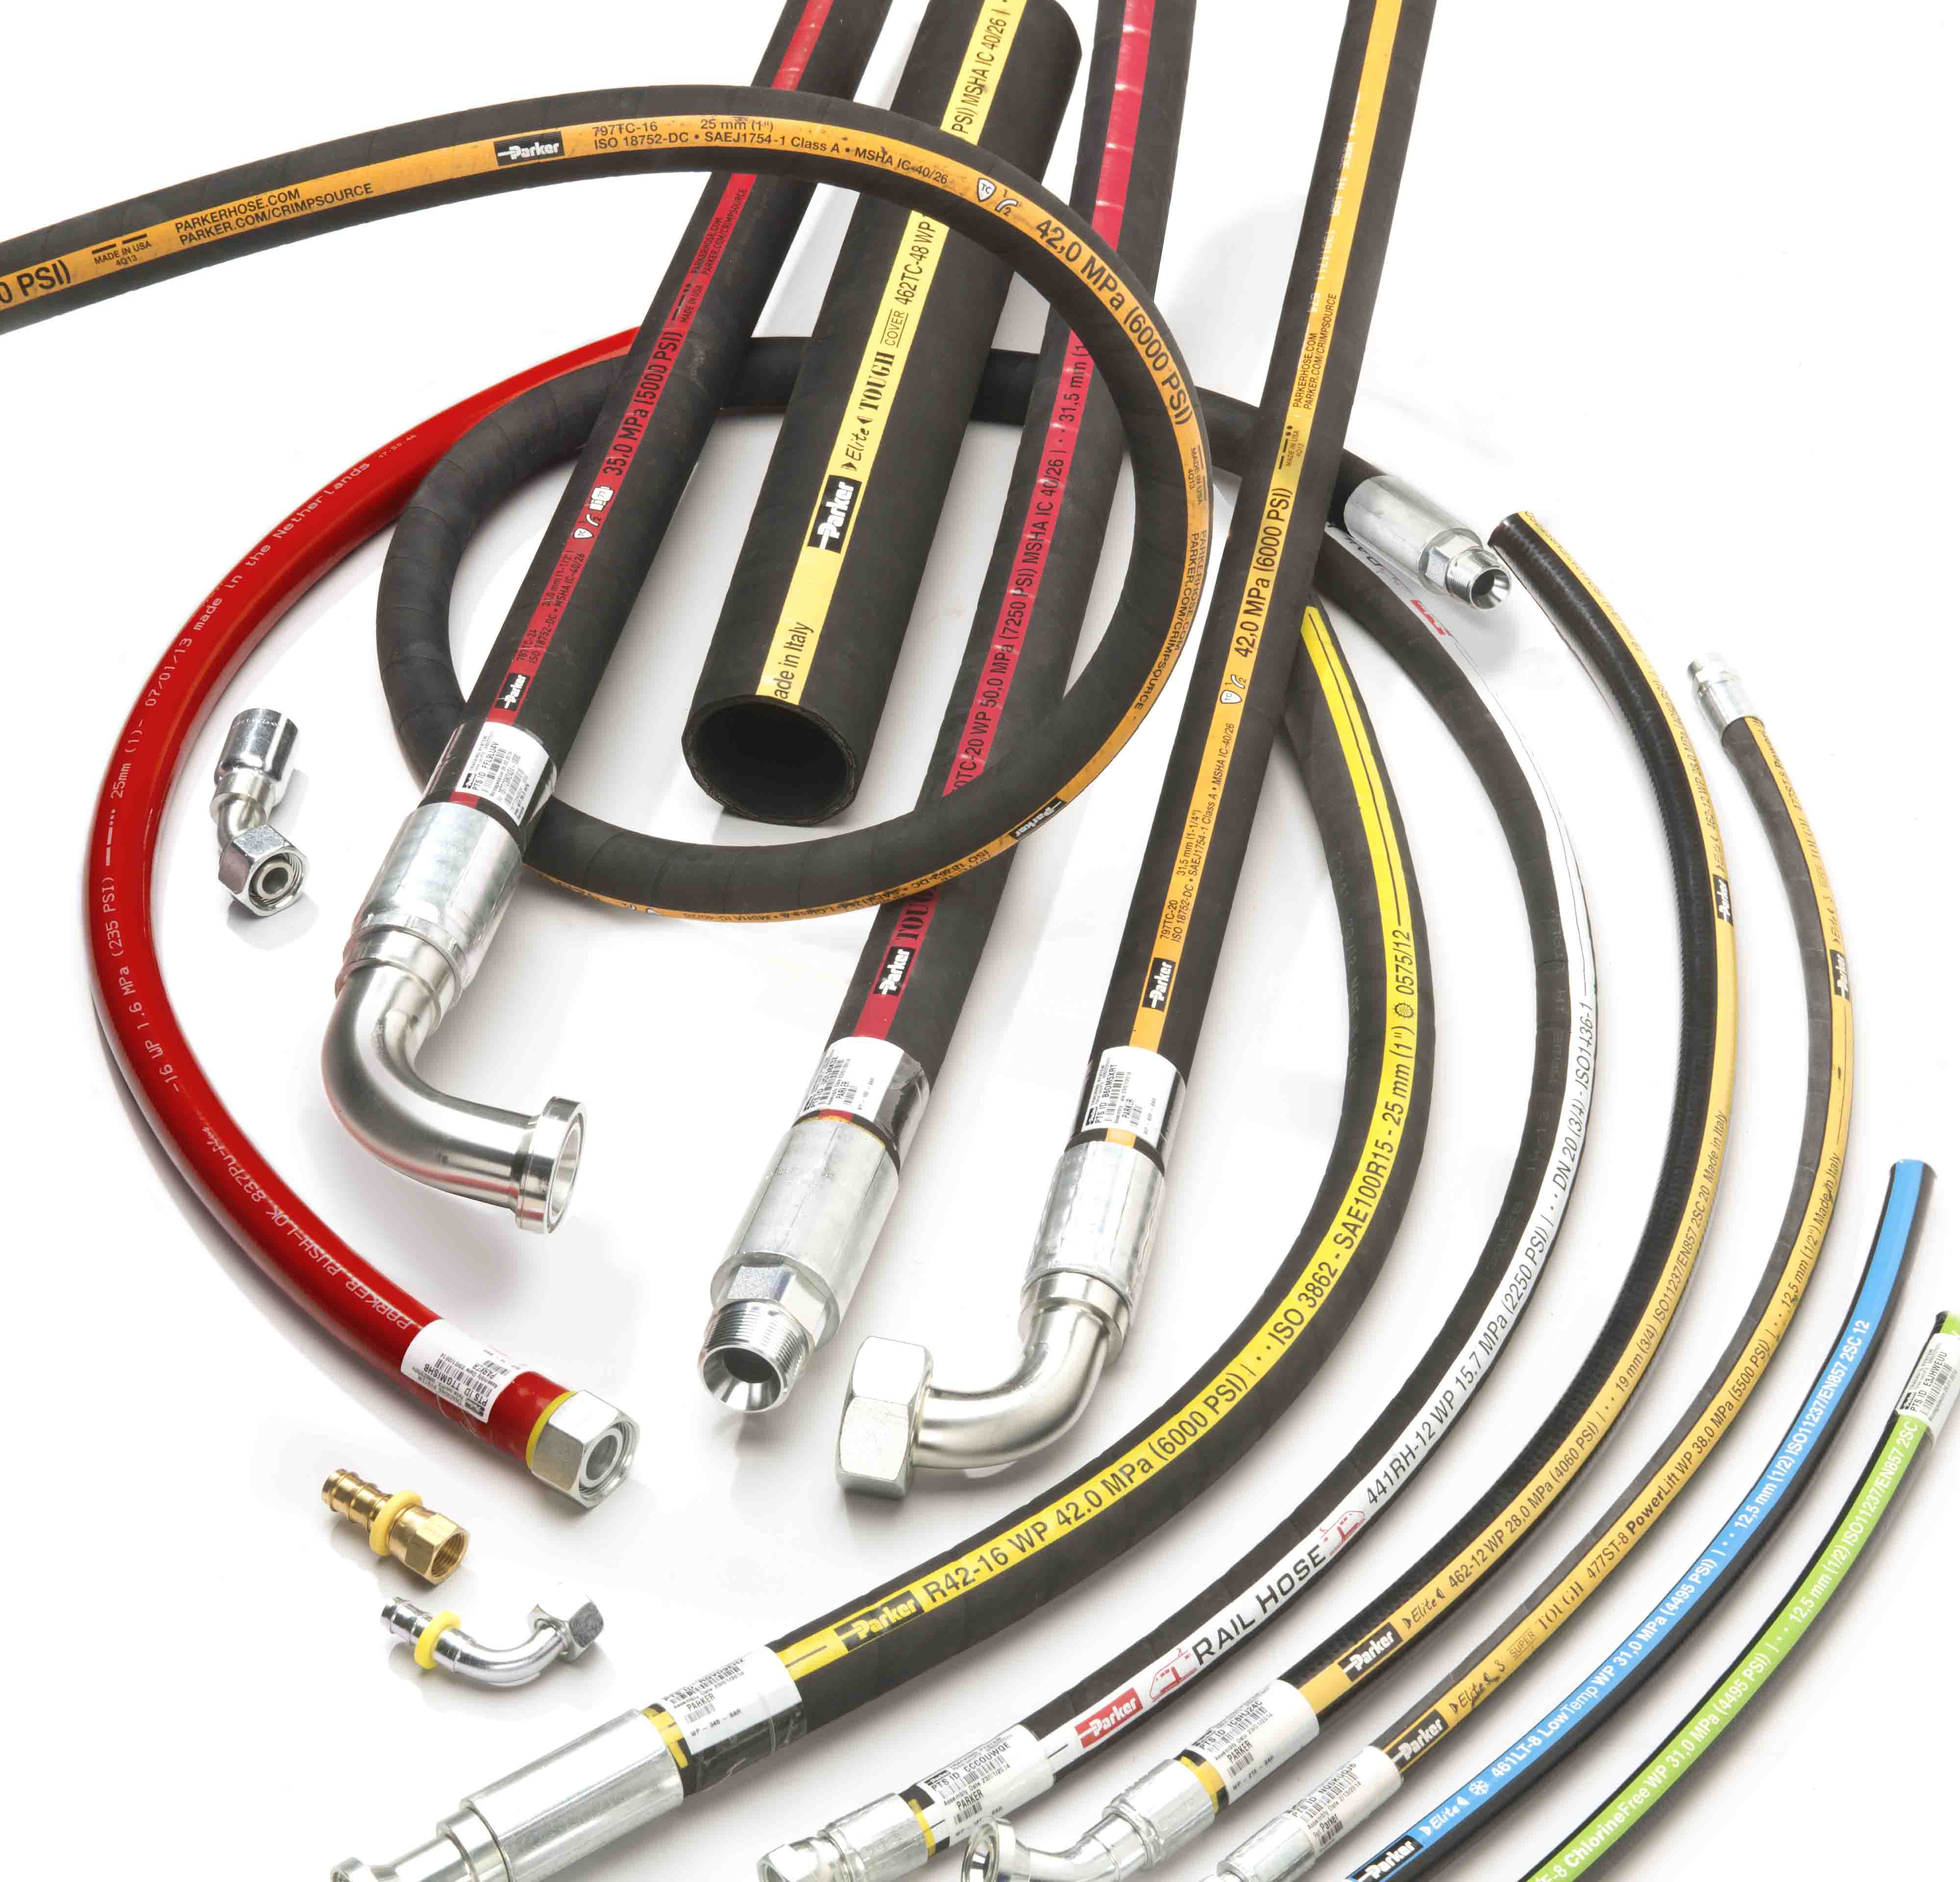 Brammer Hose Tubes Ducting Power Point Electrical Wiring Ducted Vacuuming